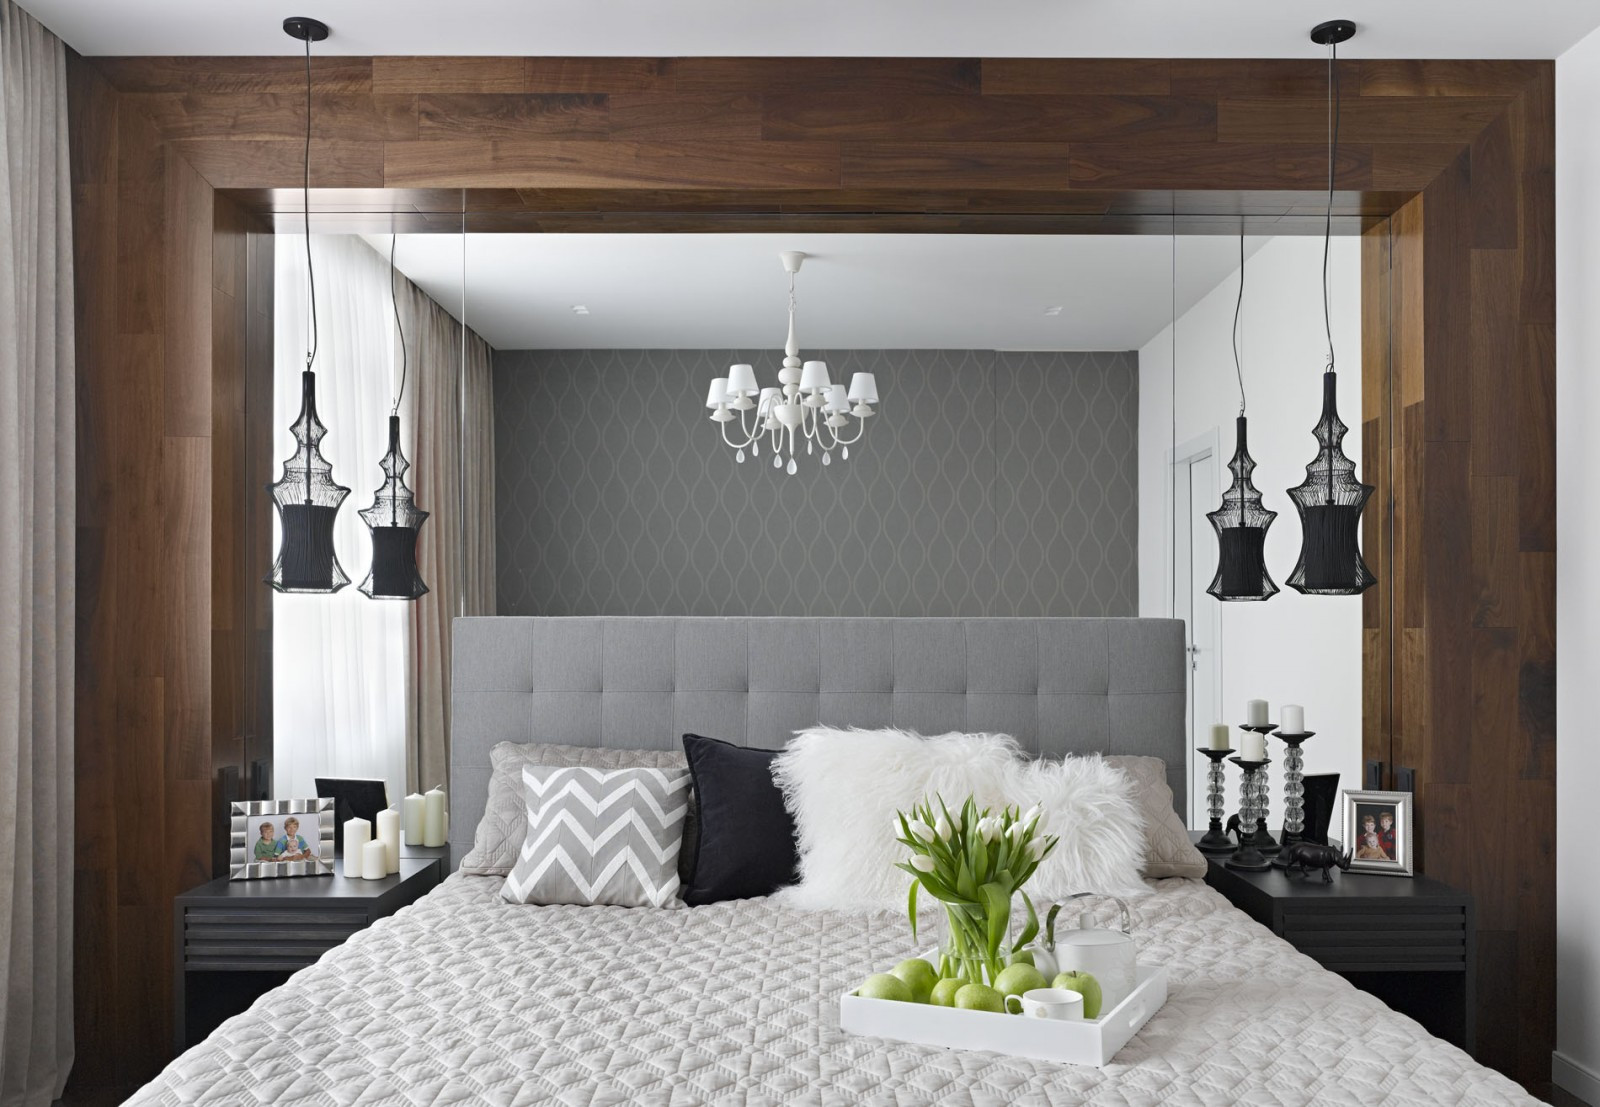 Best ideas about Small Bedroom Ideas . Save or Pin 20 Small Bedroom Ideas That Will Leave You Speechless Now.